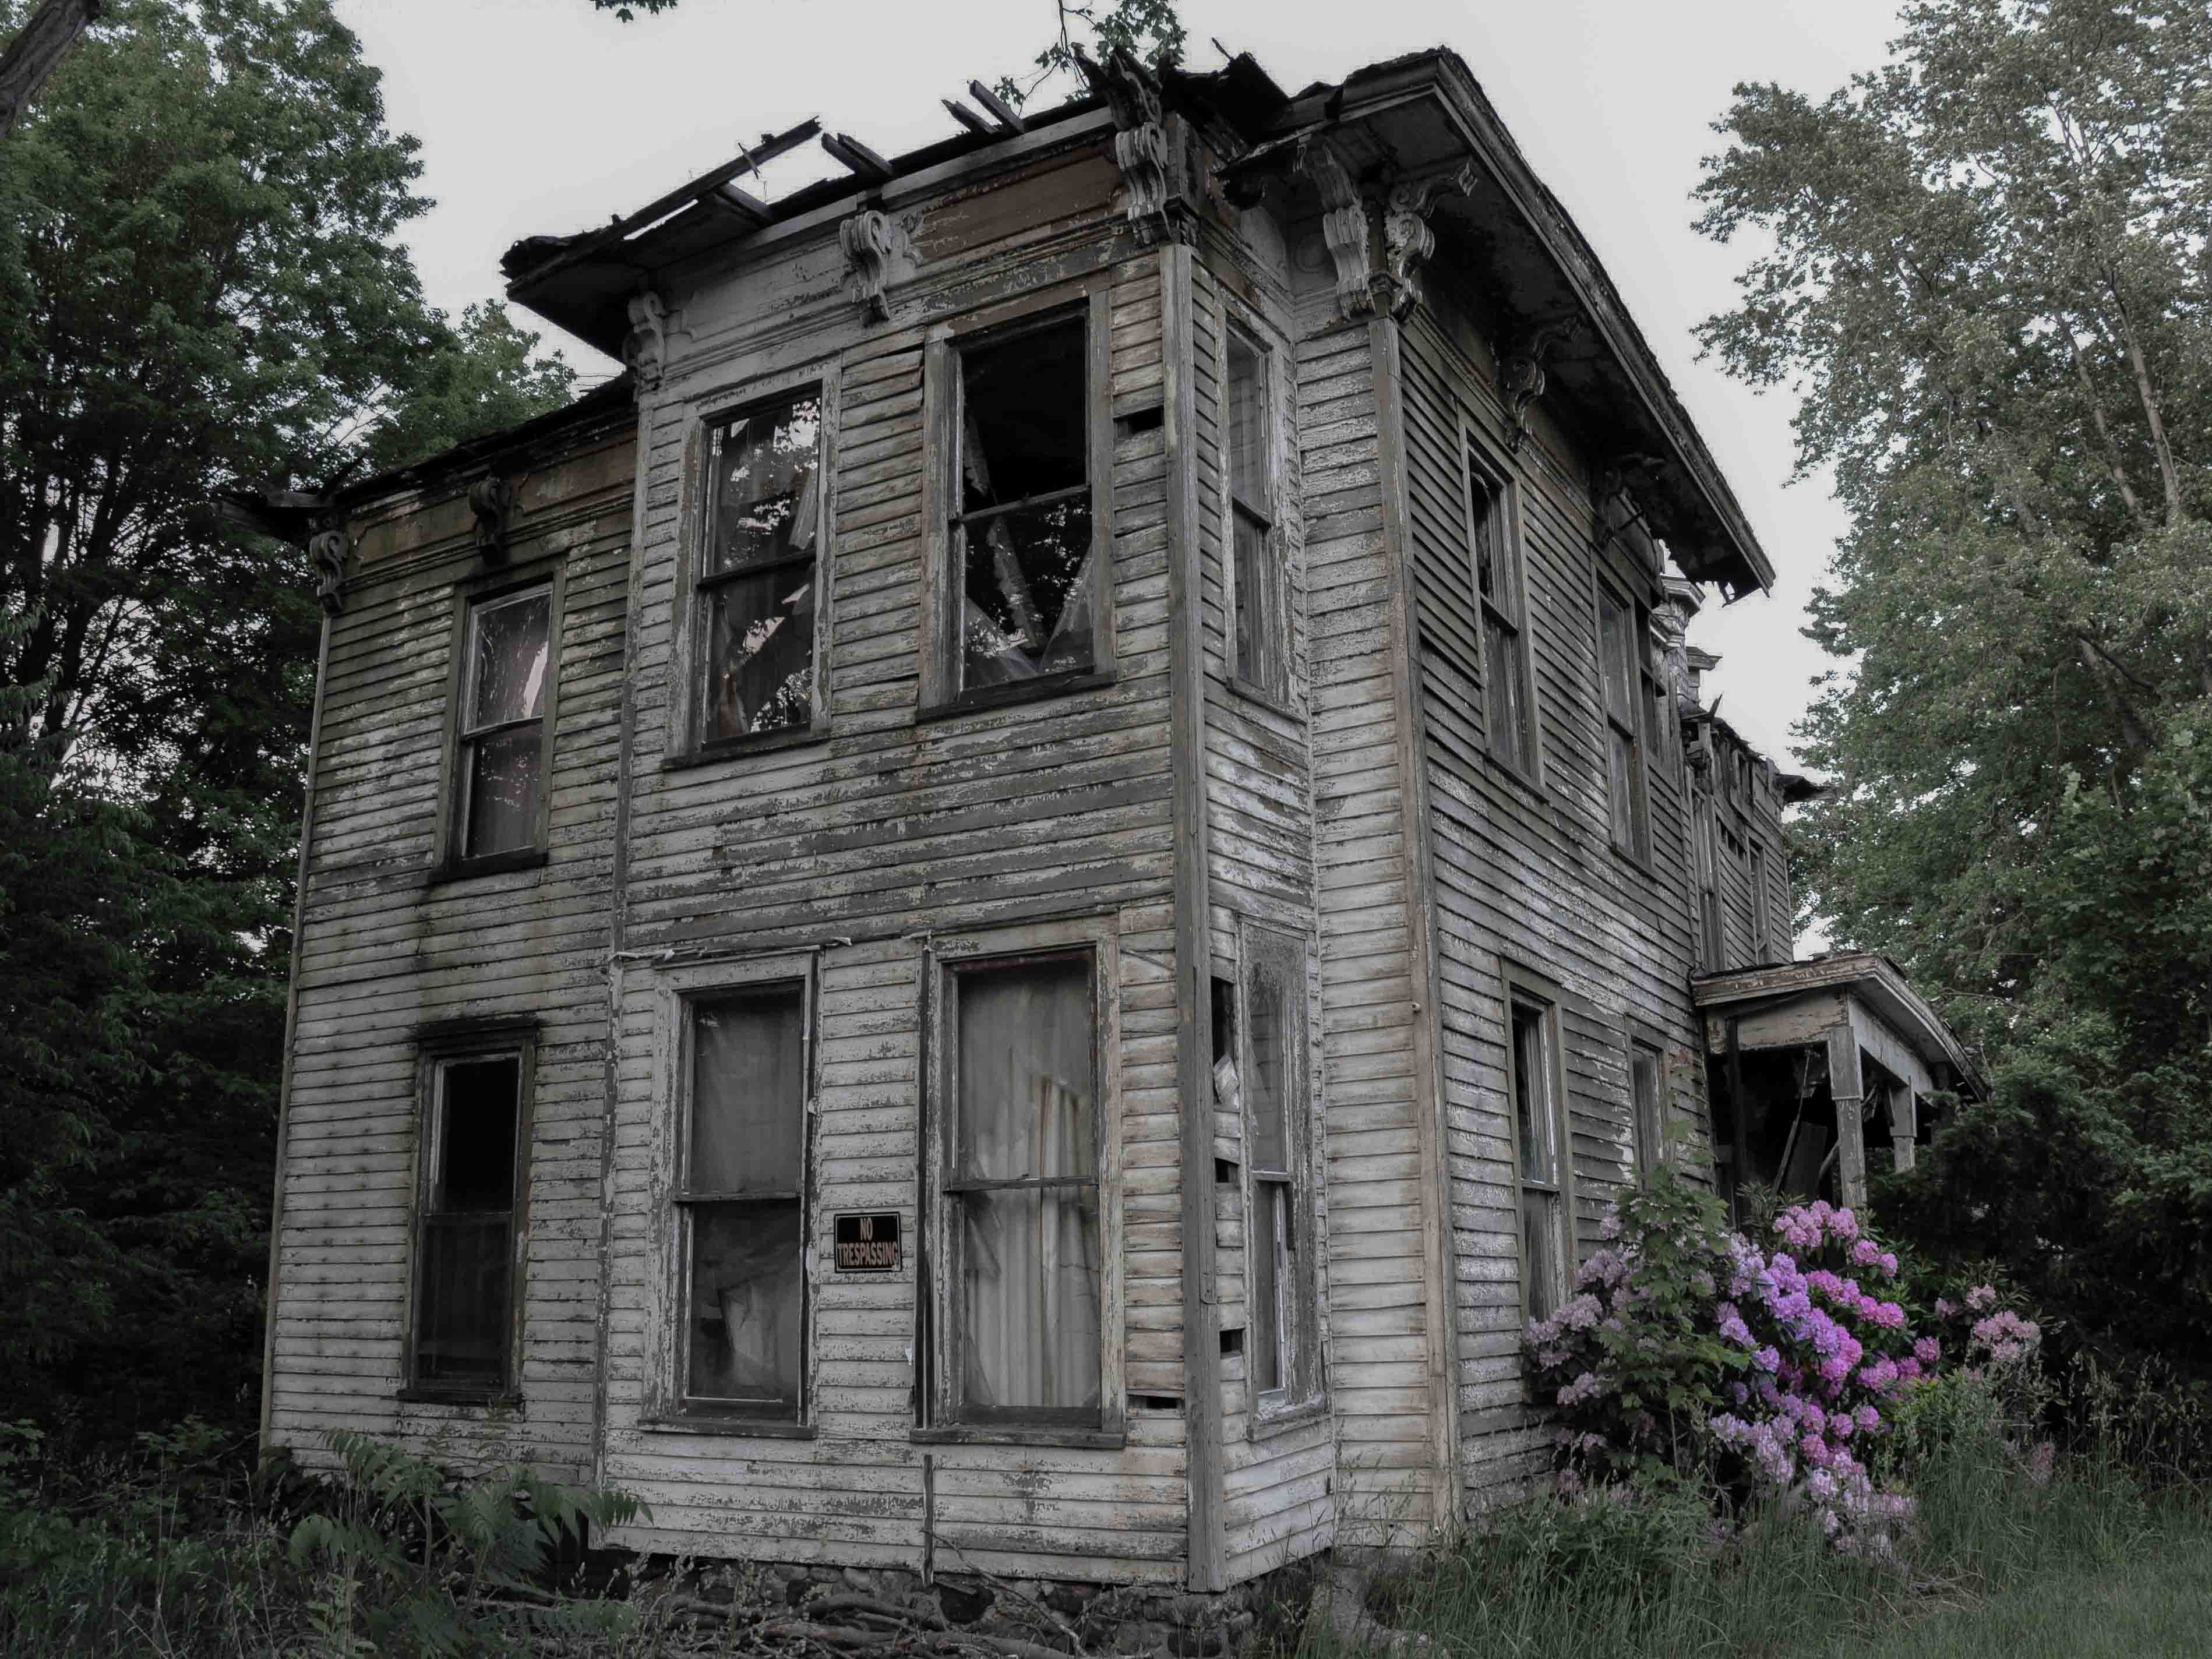 The local sheriff, Donald Caters, shot himself in 1968 after his Buffalo, New York home went into foreclosure. The vacant house has been rumored to now be haunted. Locals claim they hear voices coming from it regularly.